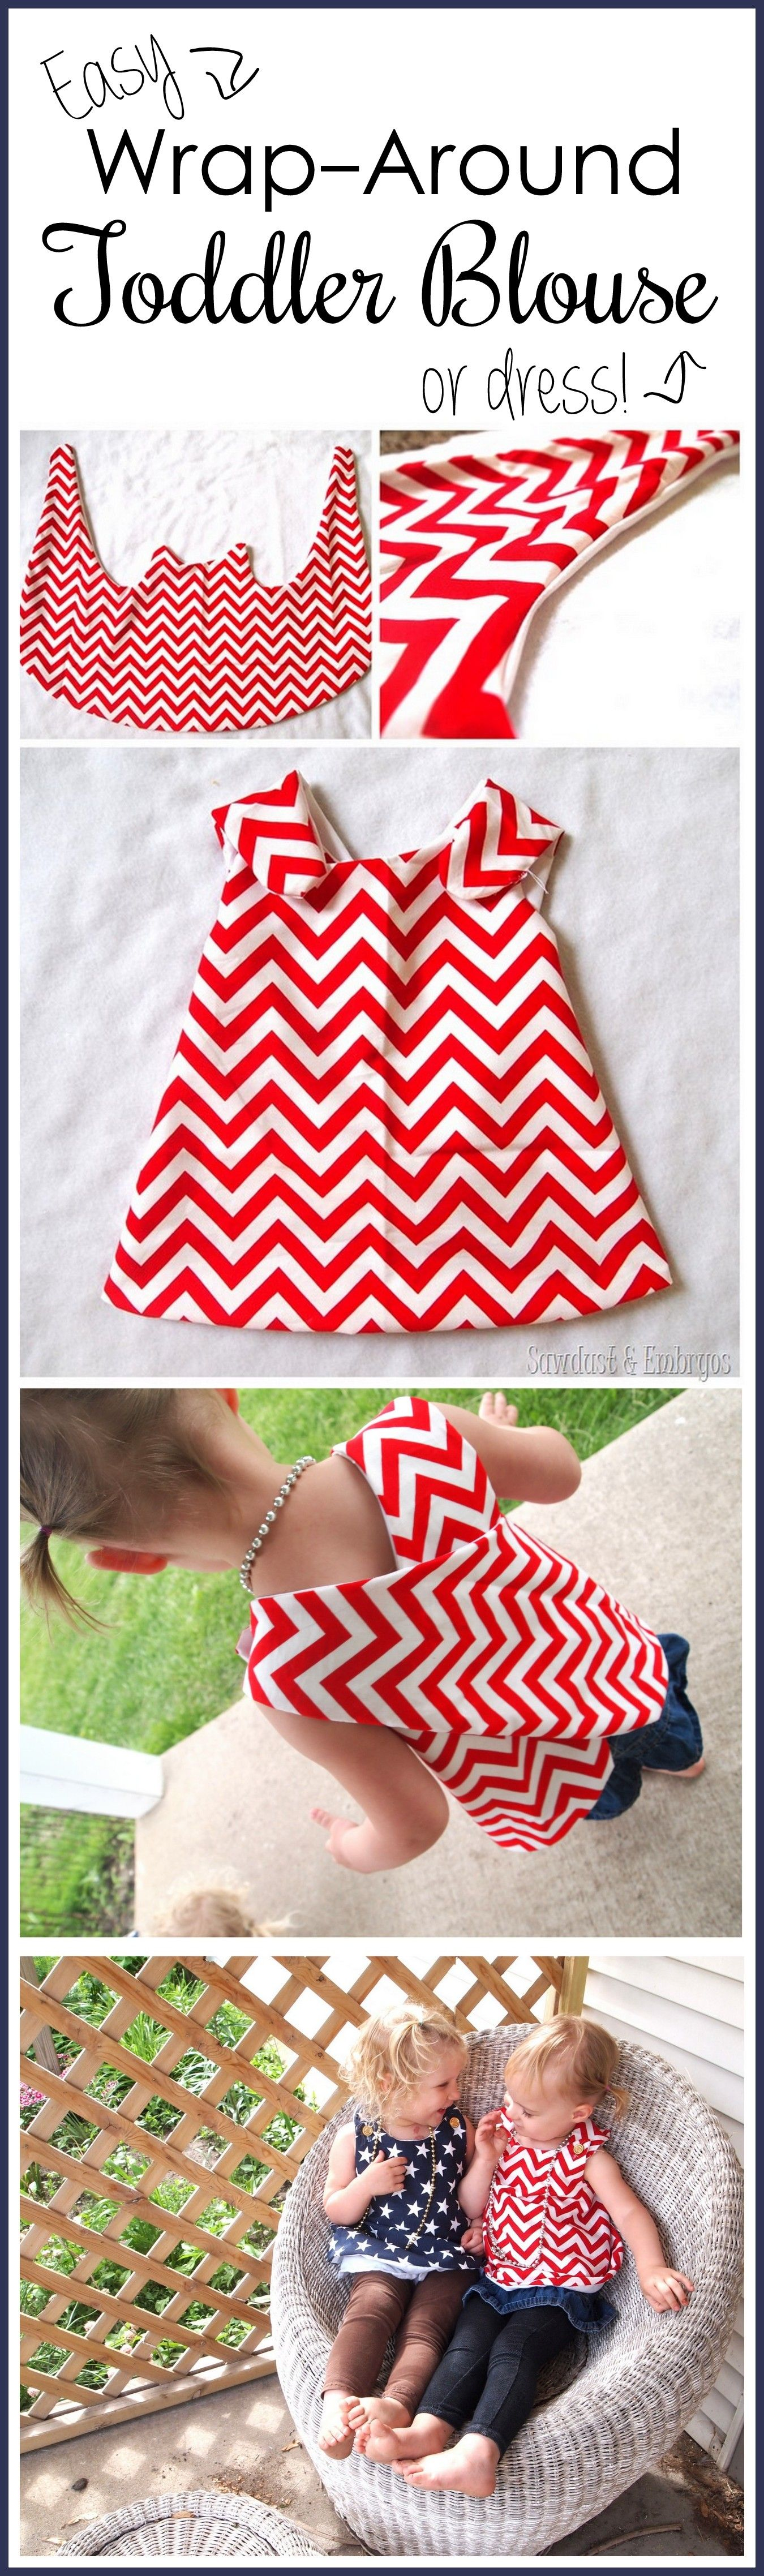 Info's : Suuuper simple wrap-around dress tutorial... so cute for toddlers! {Reality Daydream}